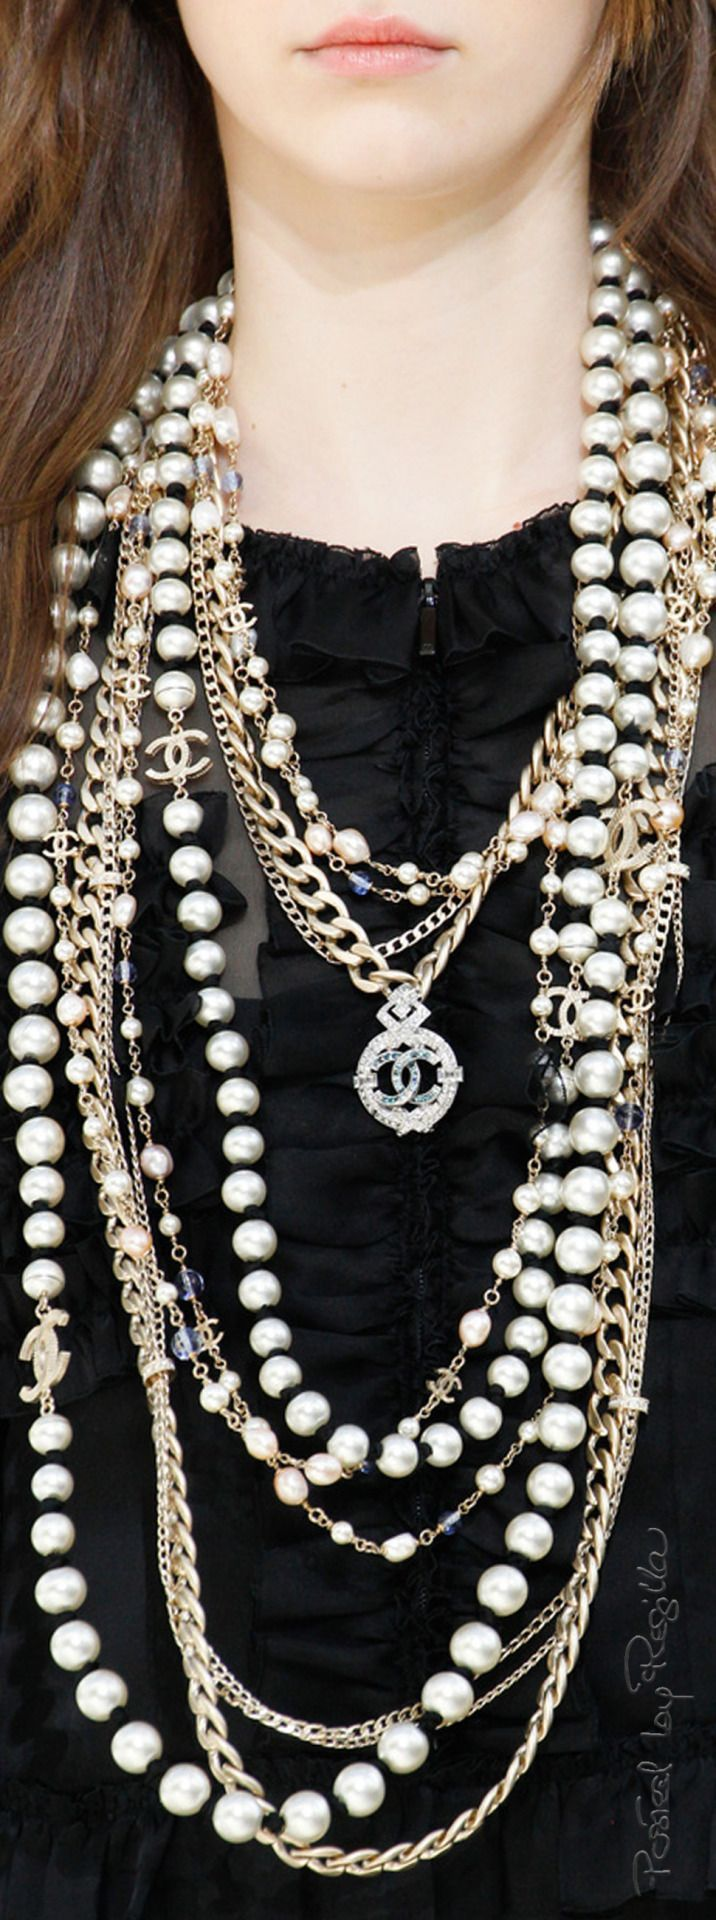 17 Best Images About Coco Chanel Haute Couture ♔ On